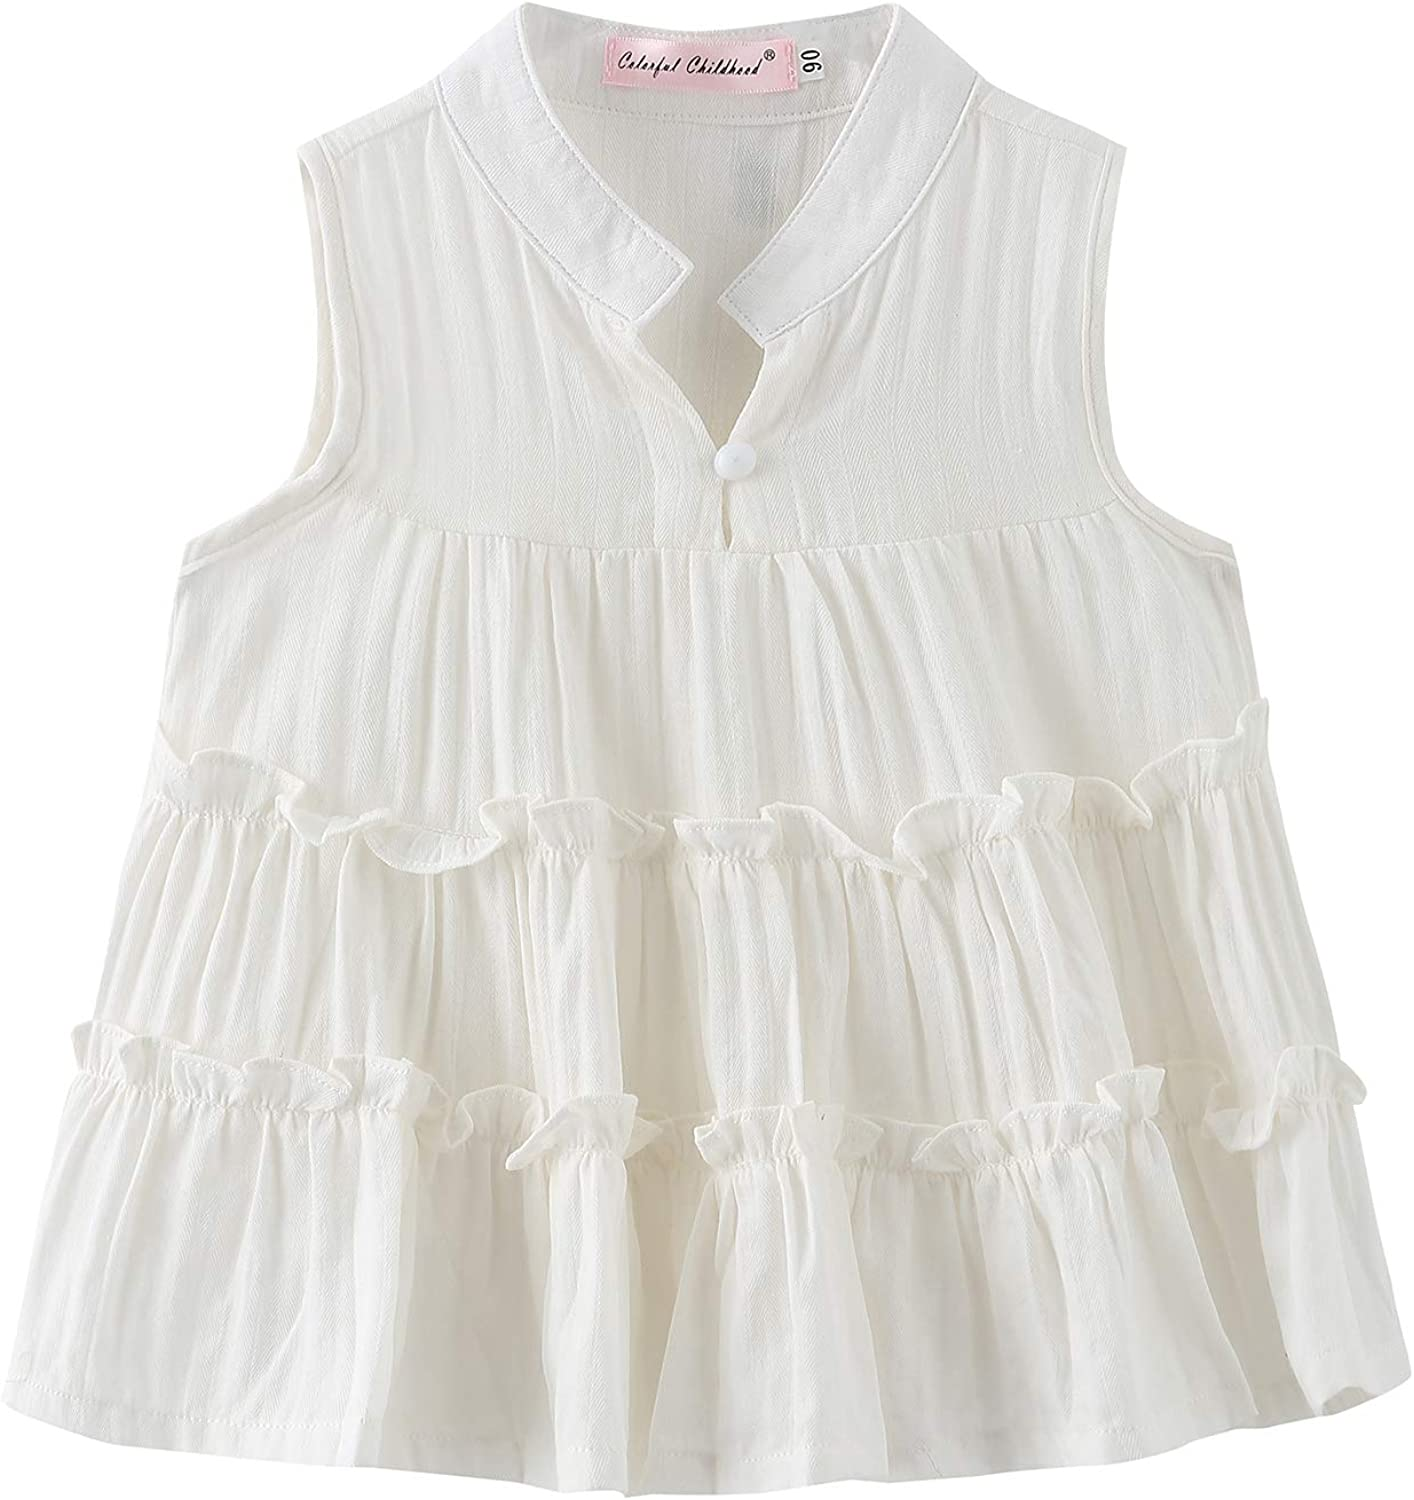 Colorful Childhood Girls Ruffles Blouse Casual OFFicial L Girl Shirts Selling Tee